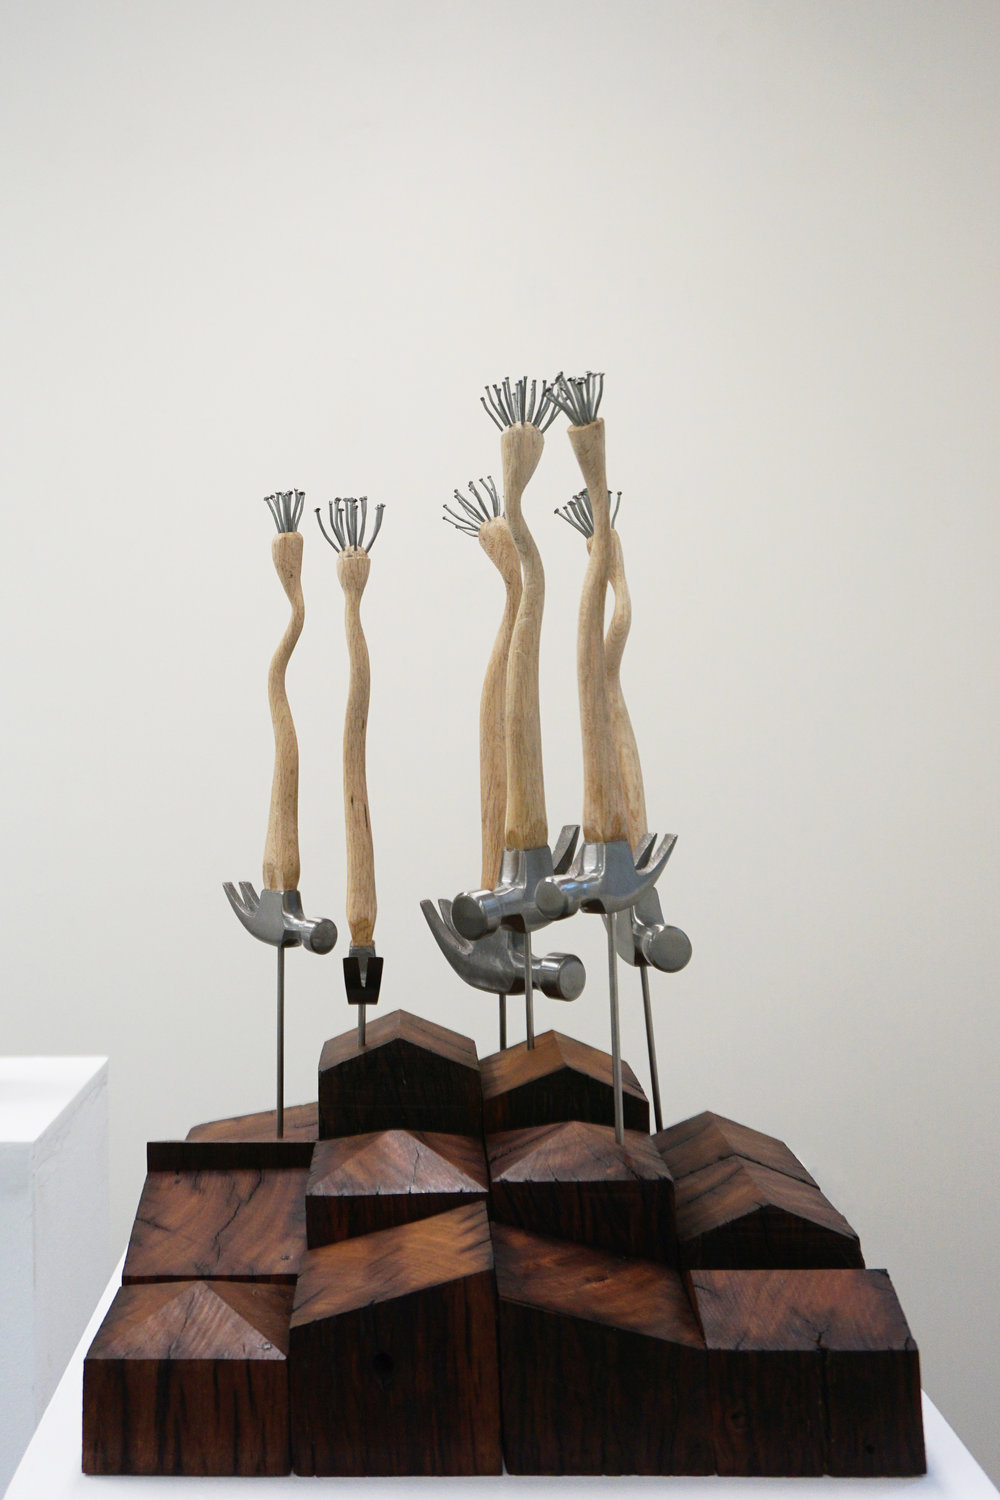 Peter Hill,  Beautiful Work , hammer, galvanised nails, wooden blocks, 60 x 40 x 40 cm $3,500